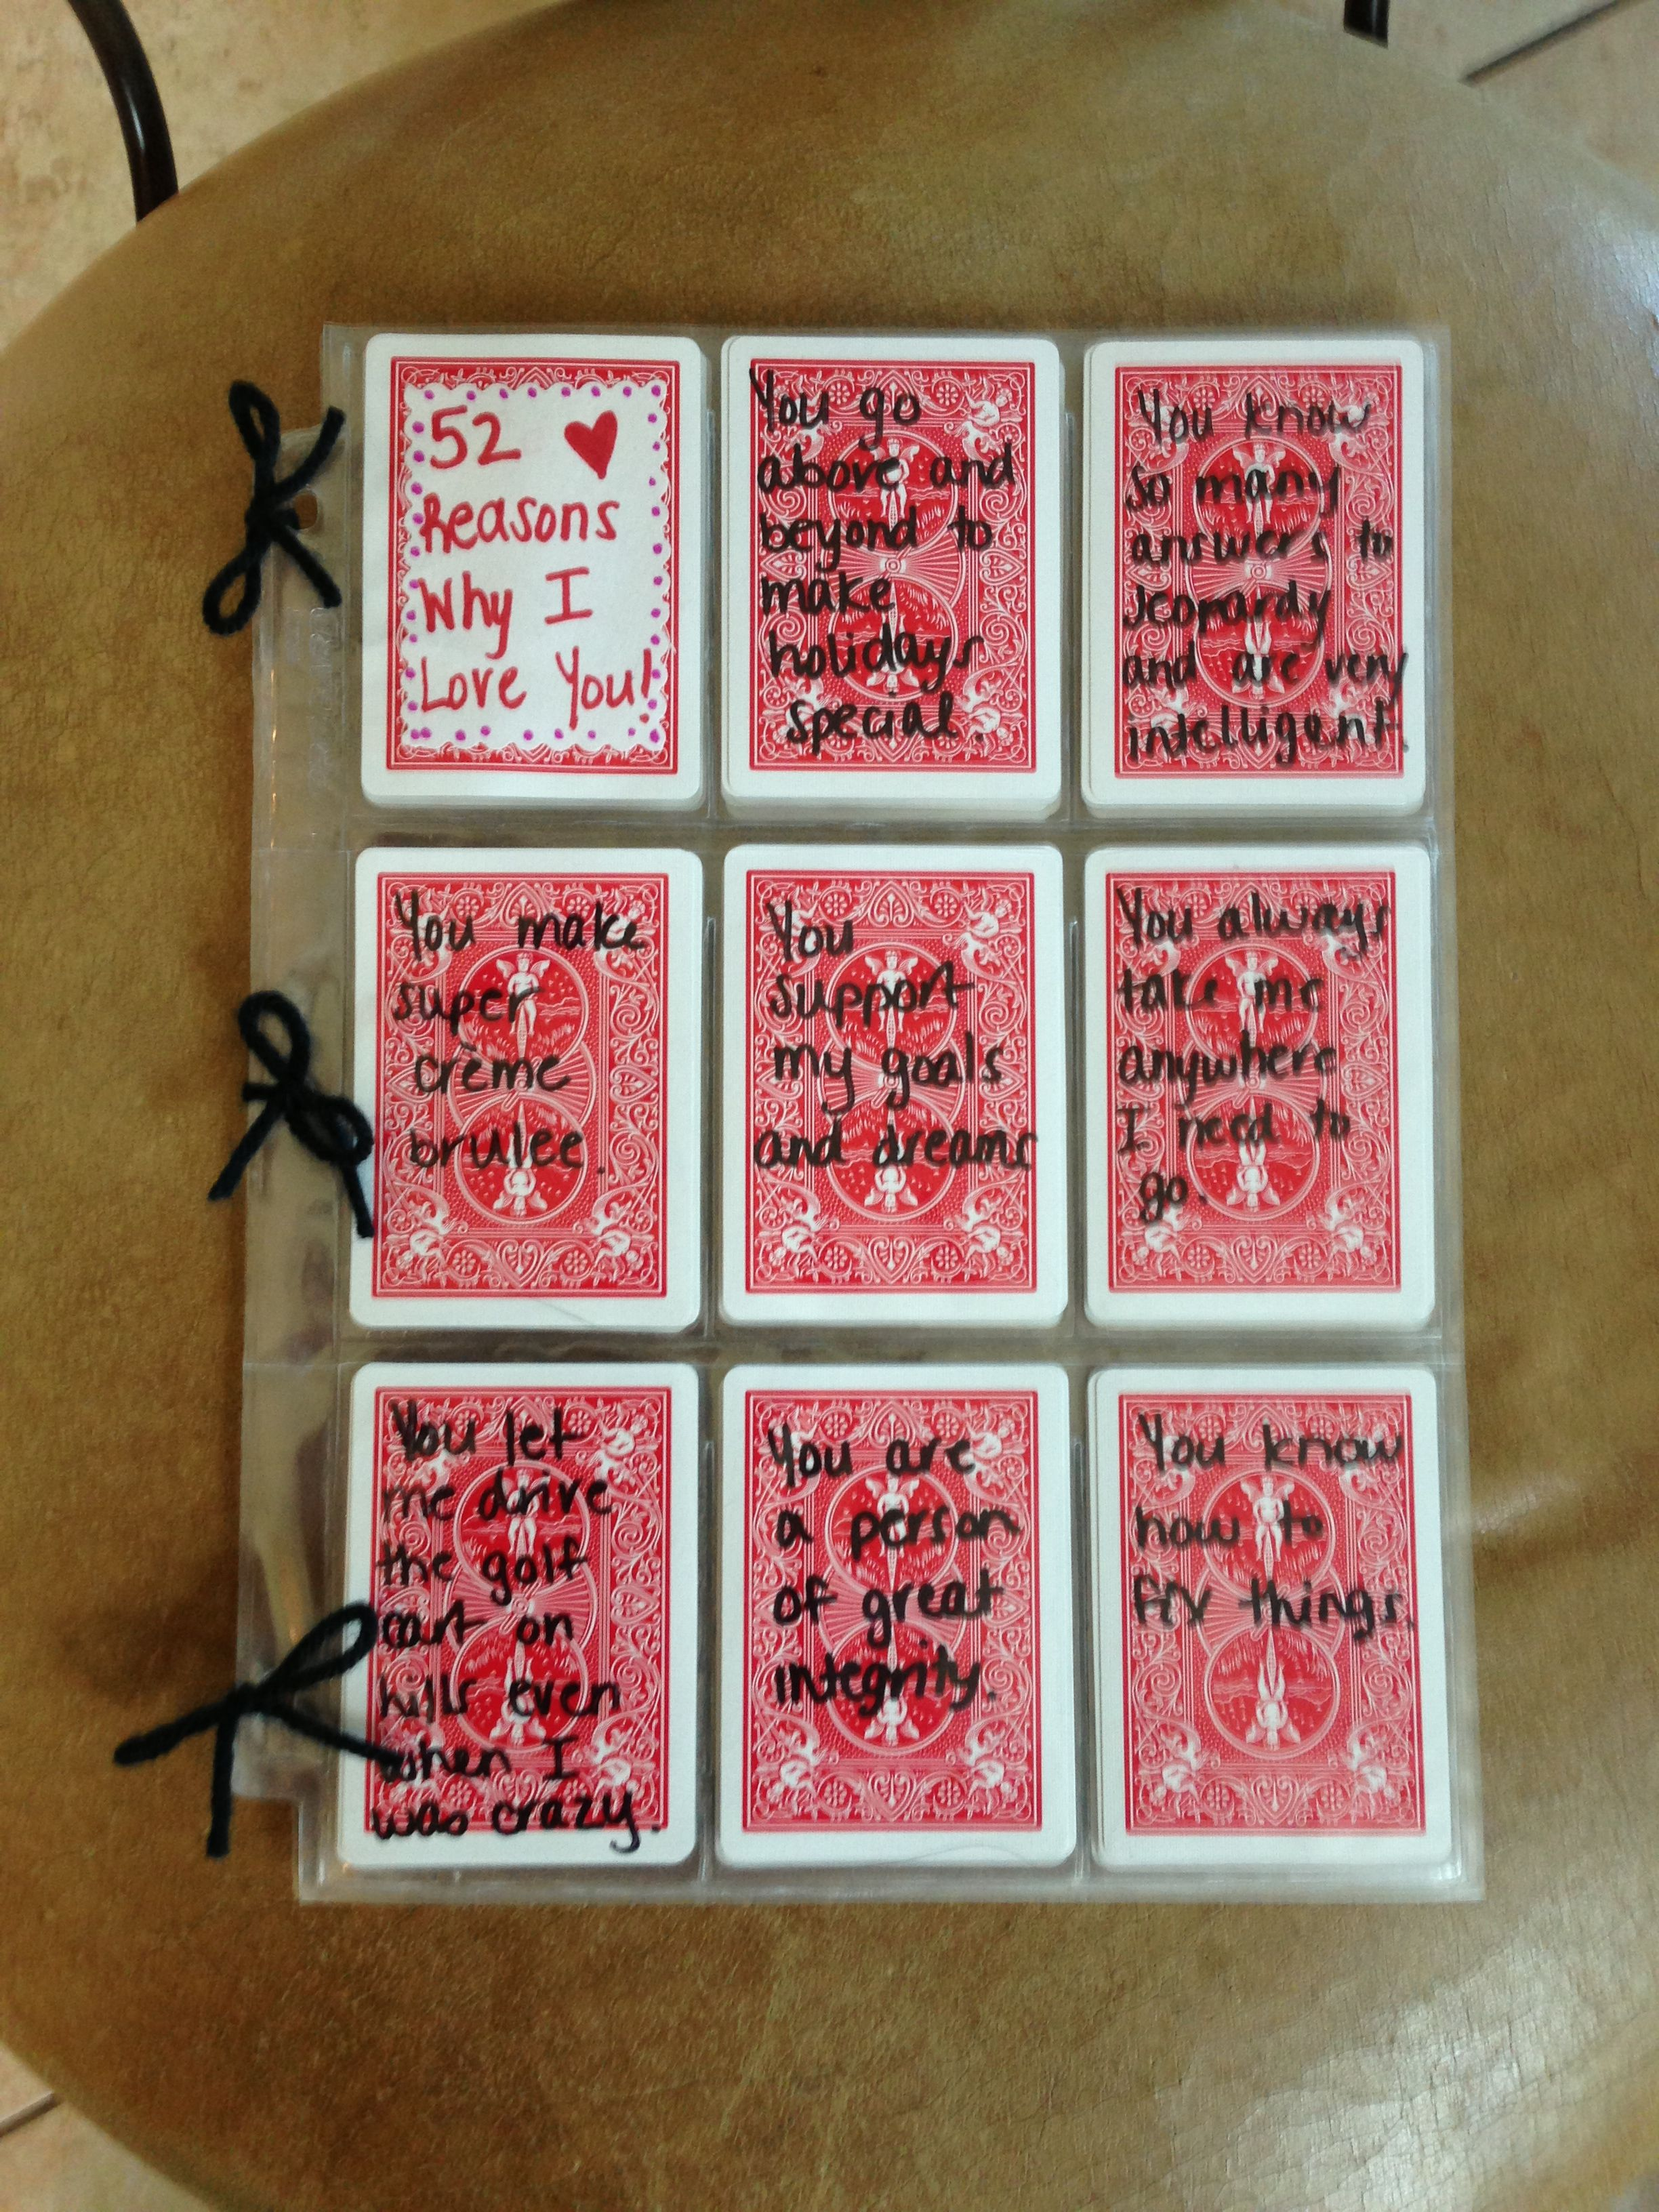 I Love You Crafts 52 Reasons I Love You Write Reasons With Sharpie On Cards And Put